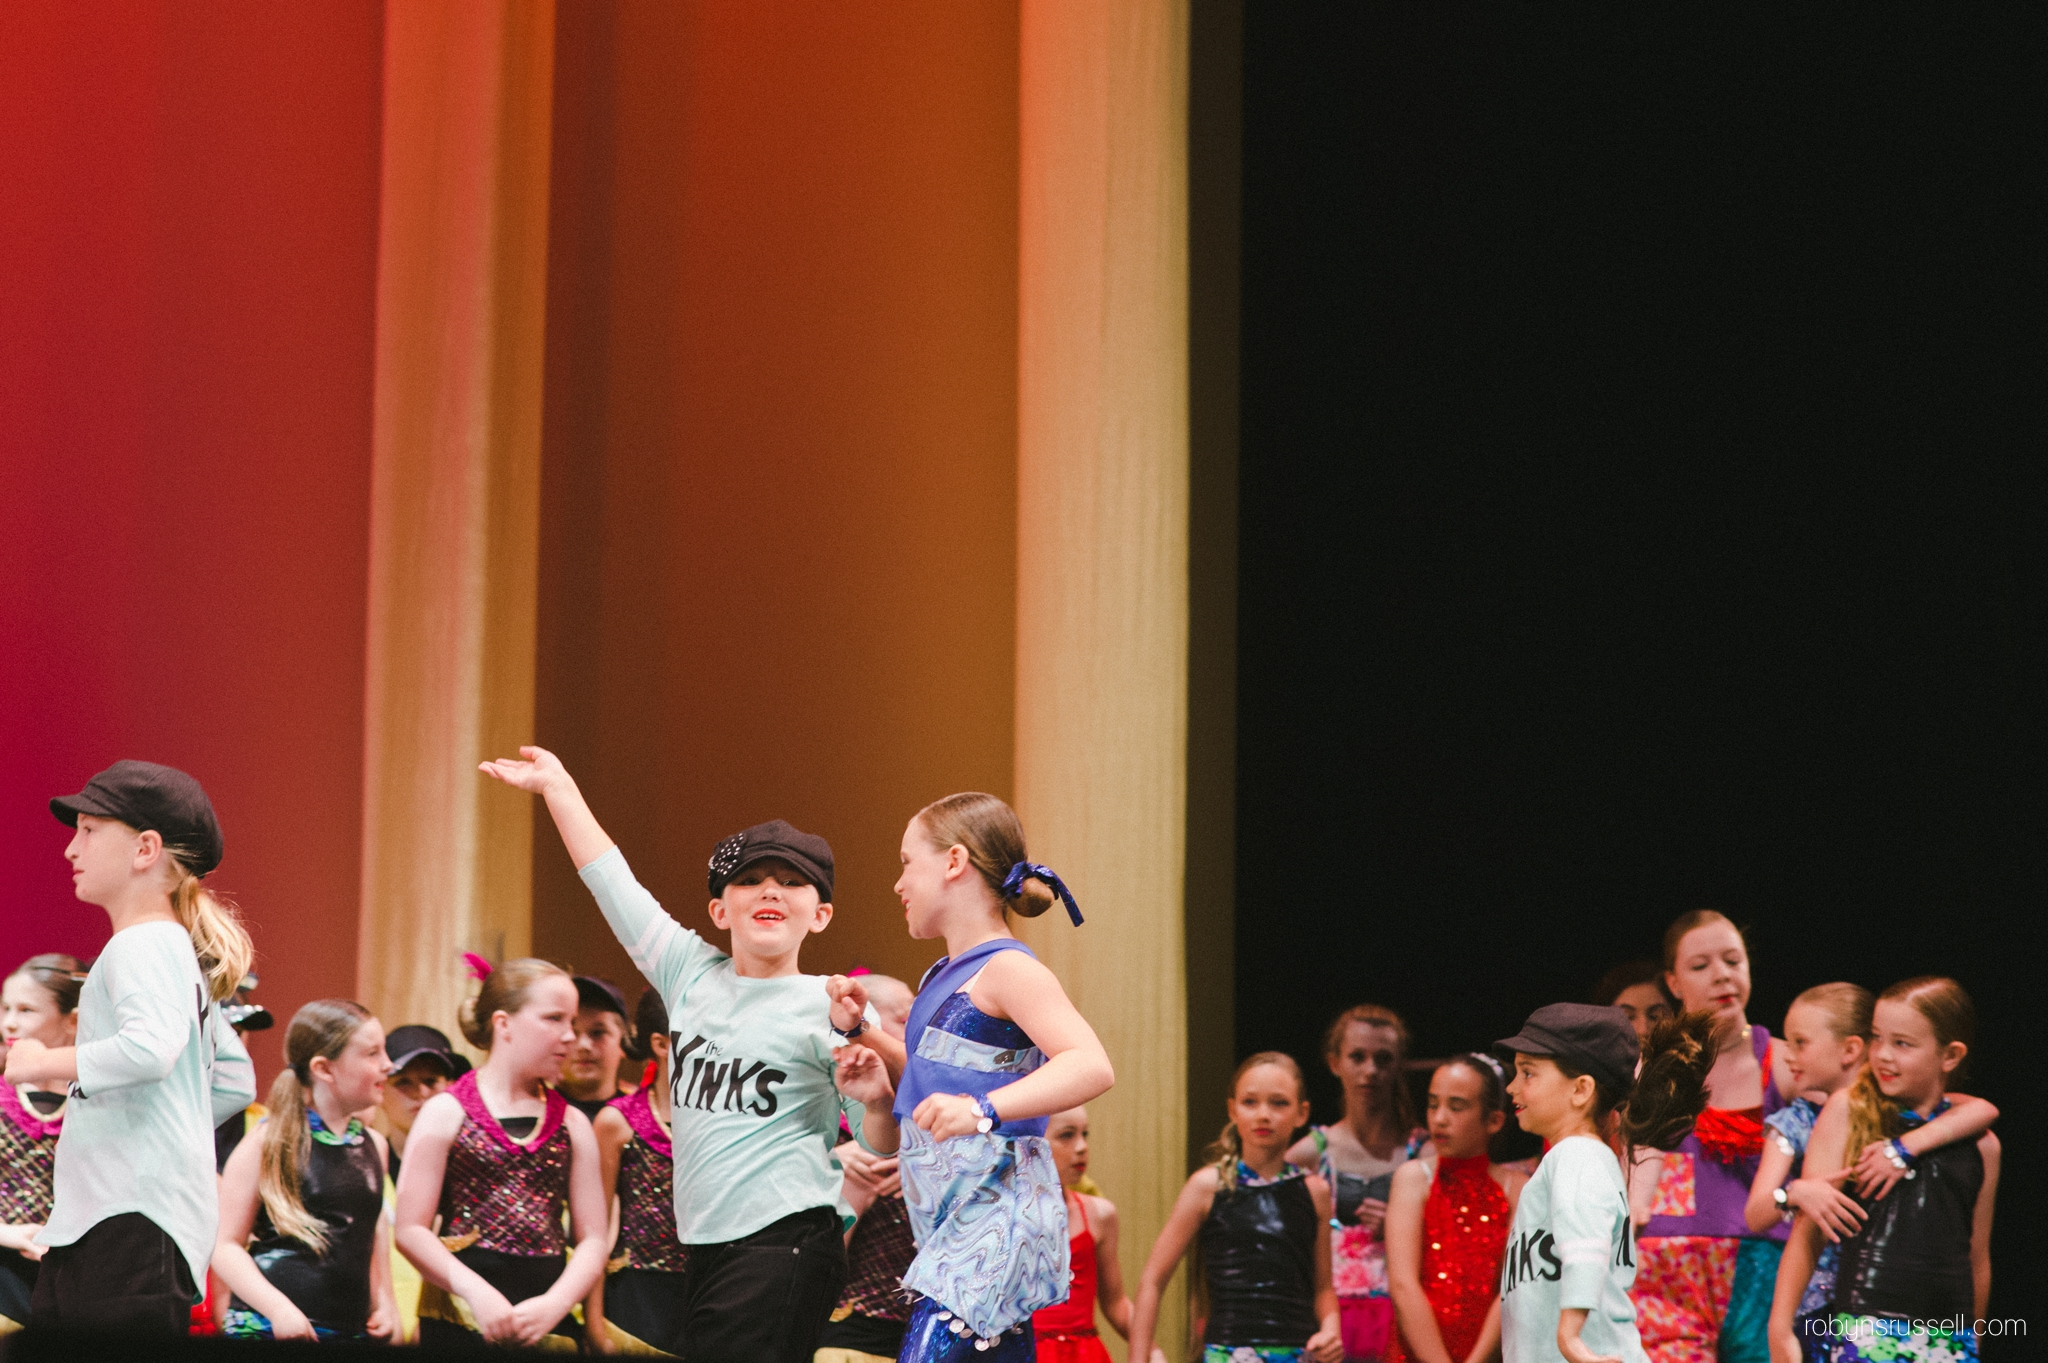 05-bdc-rehearsals-waving-to-crowd.jpg